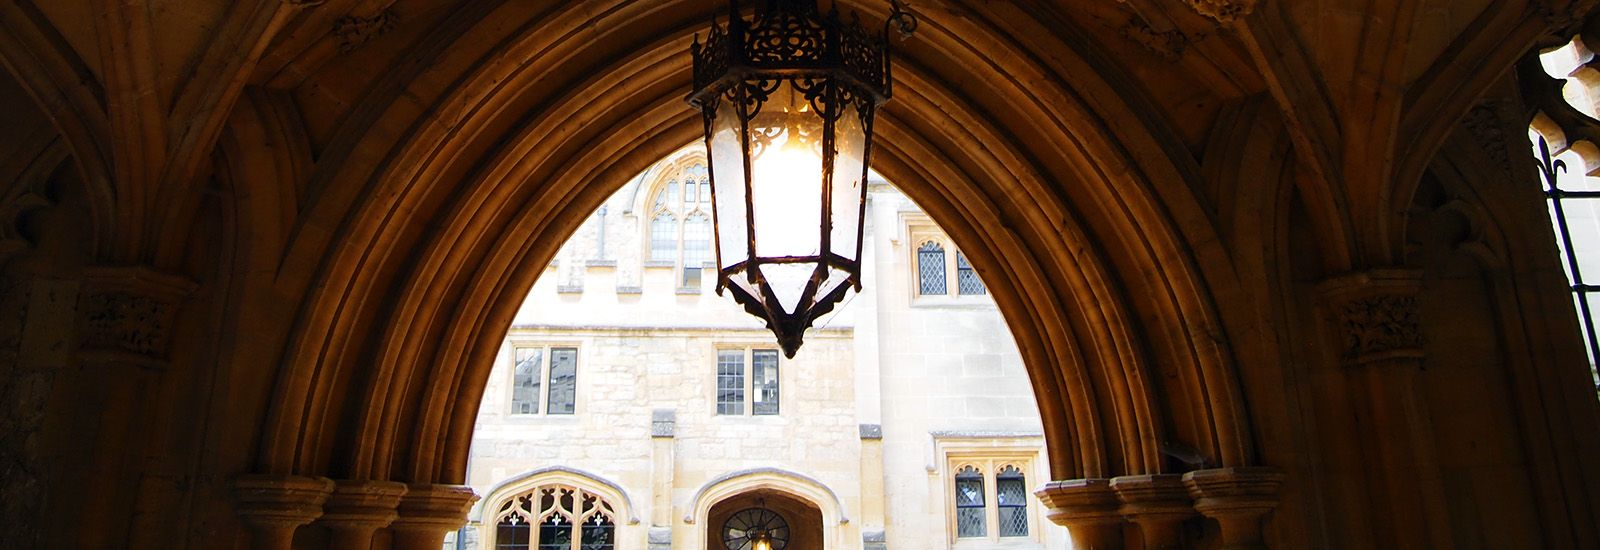 A lamp in an archway